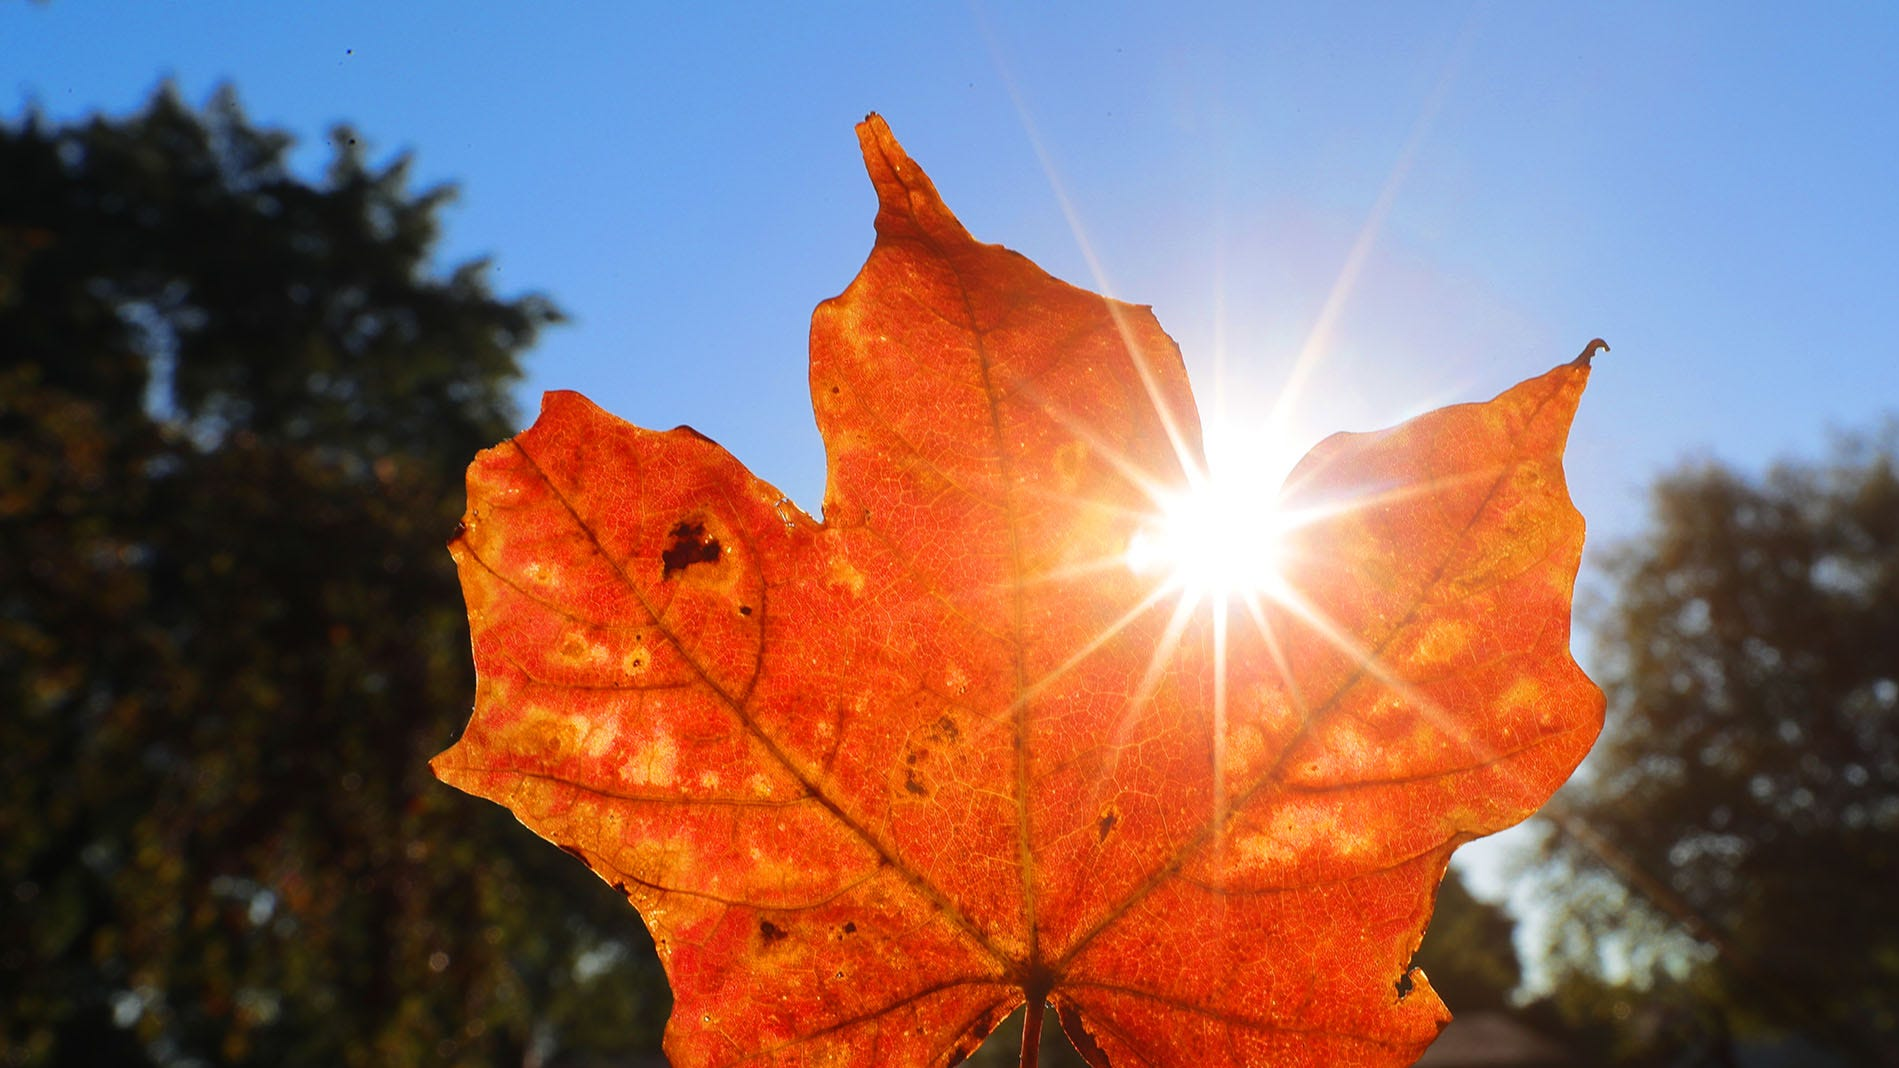 50 things to do with your kids in fall during coronavirus